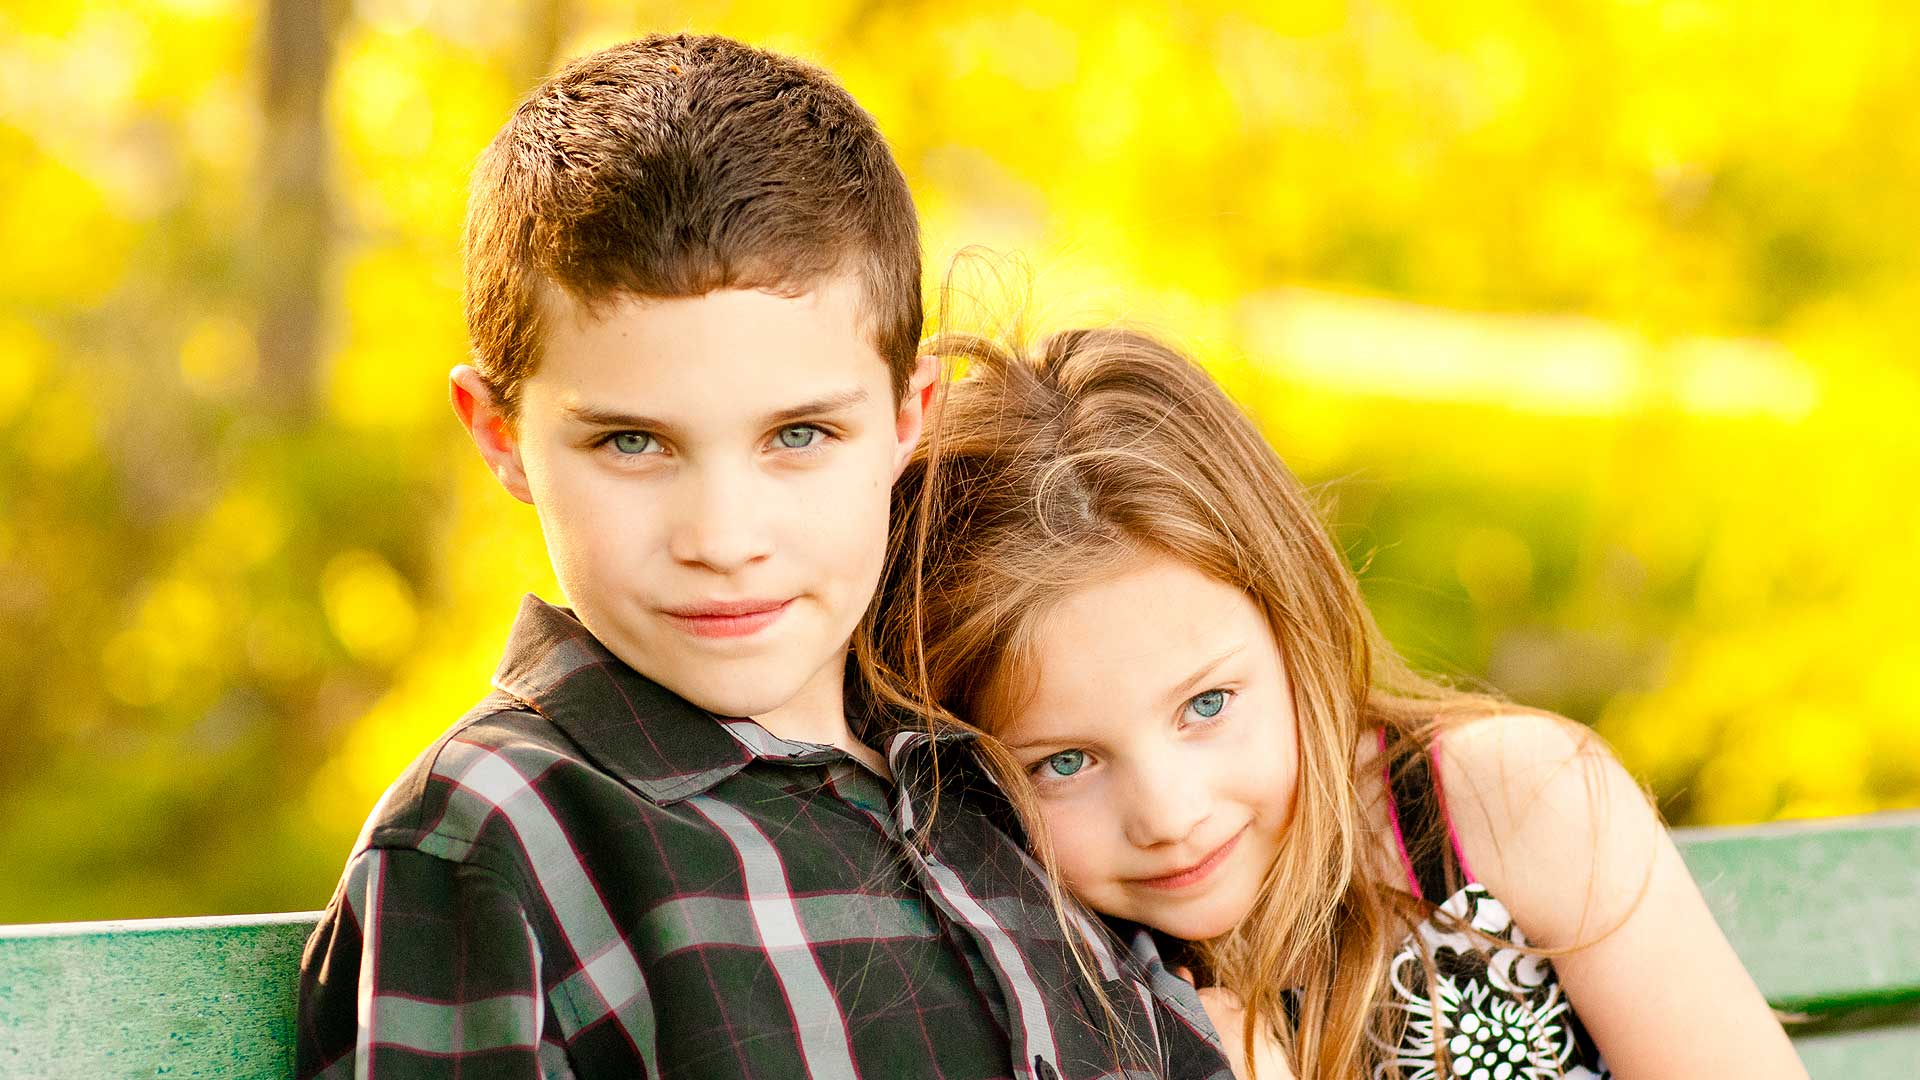 AIDAN AND AVERY